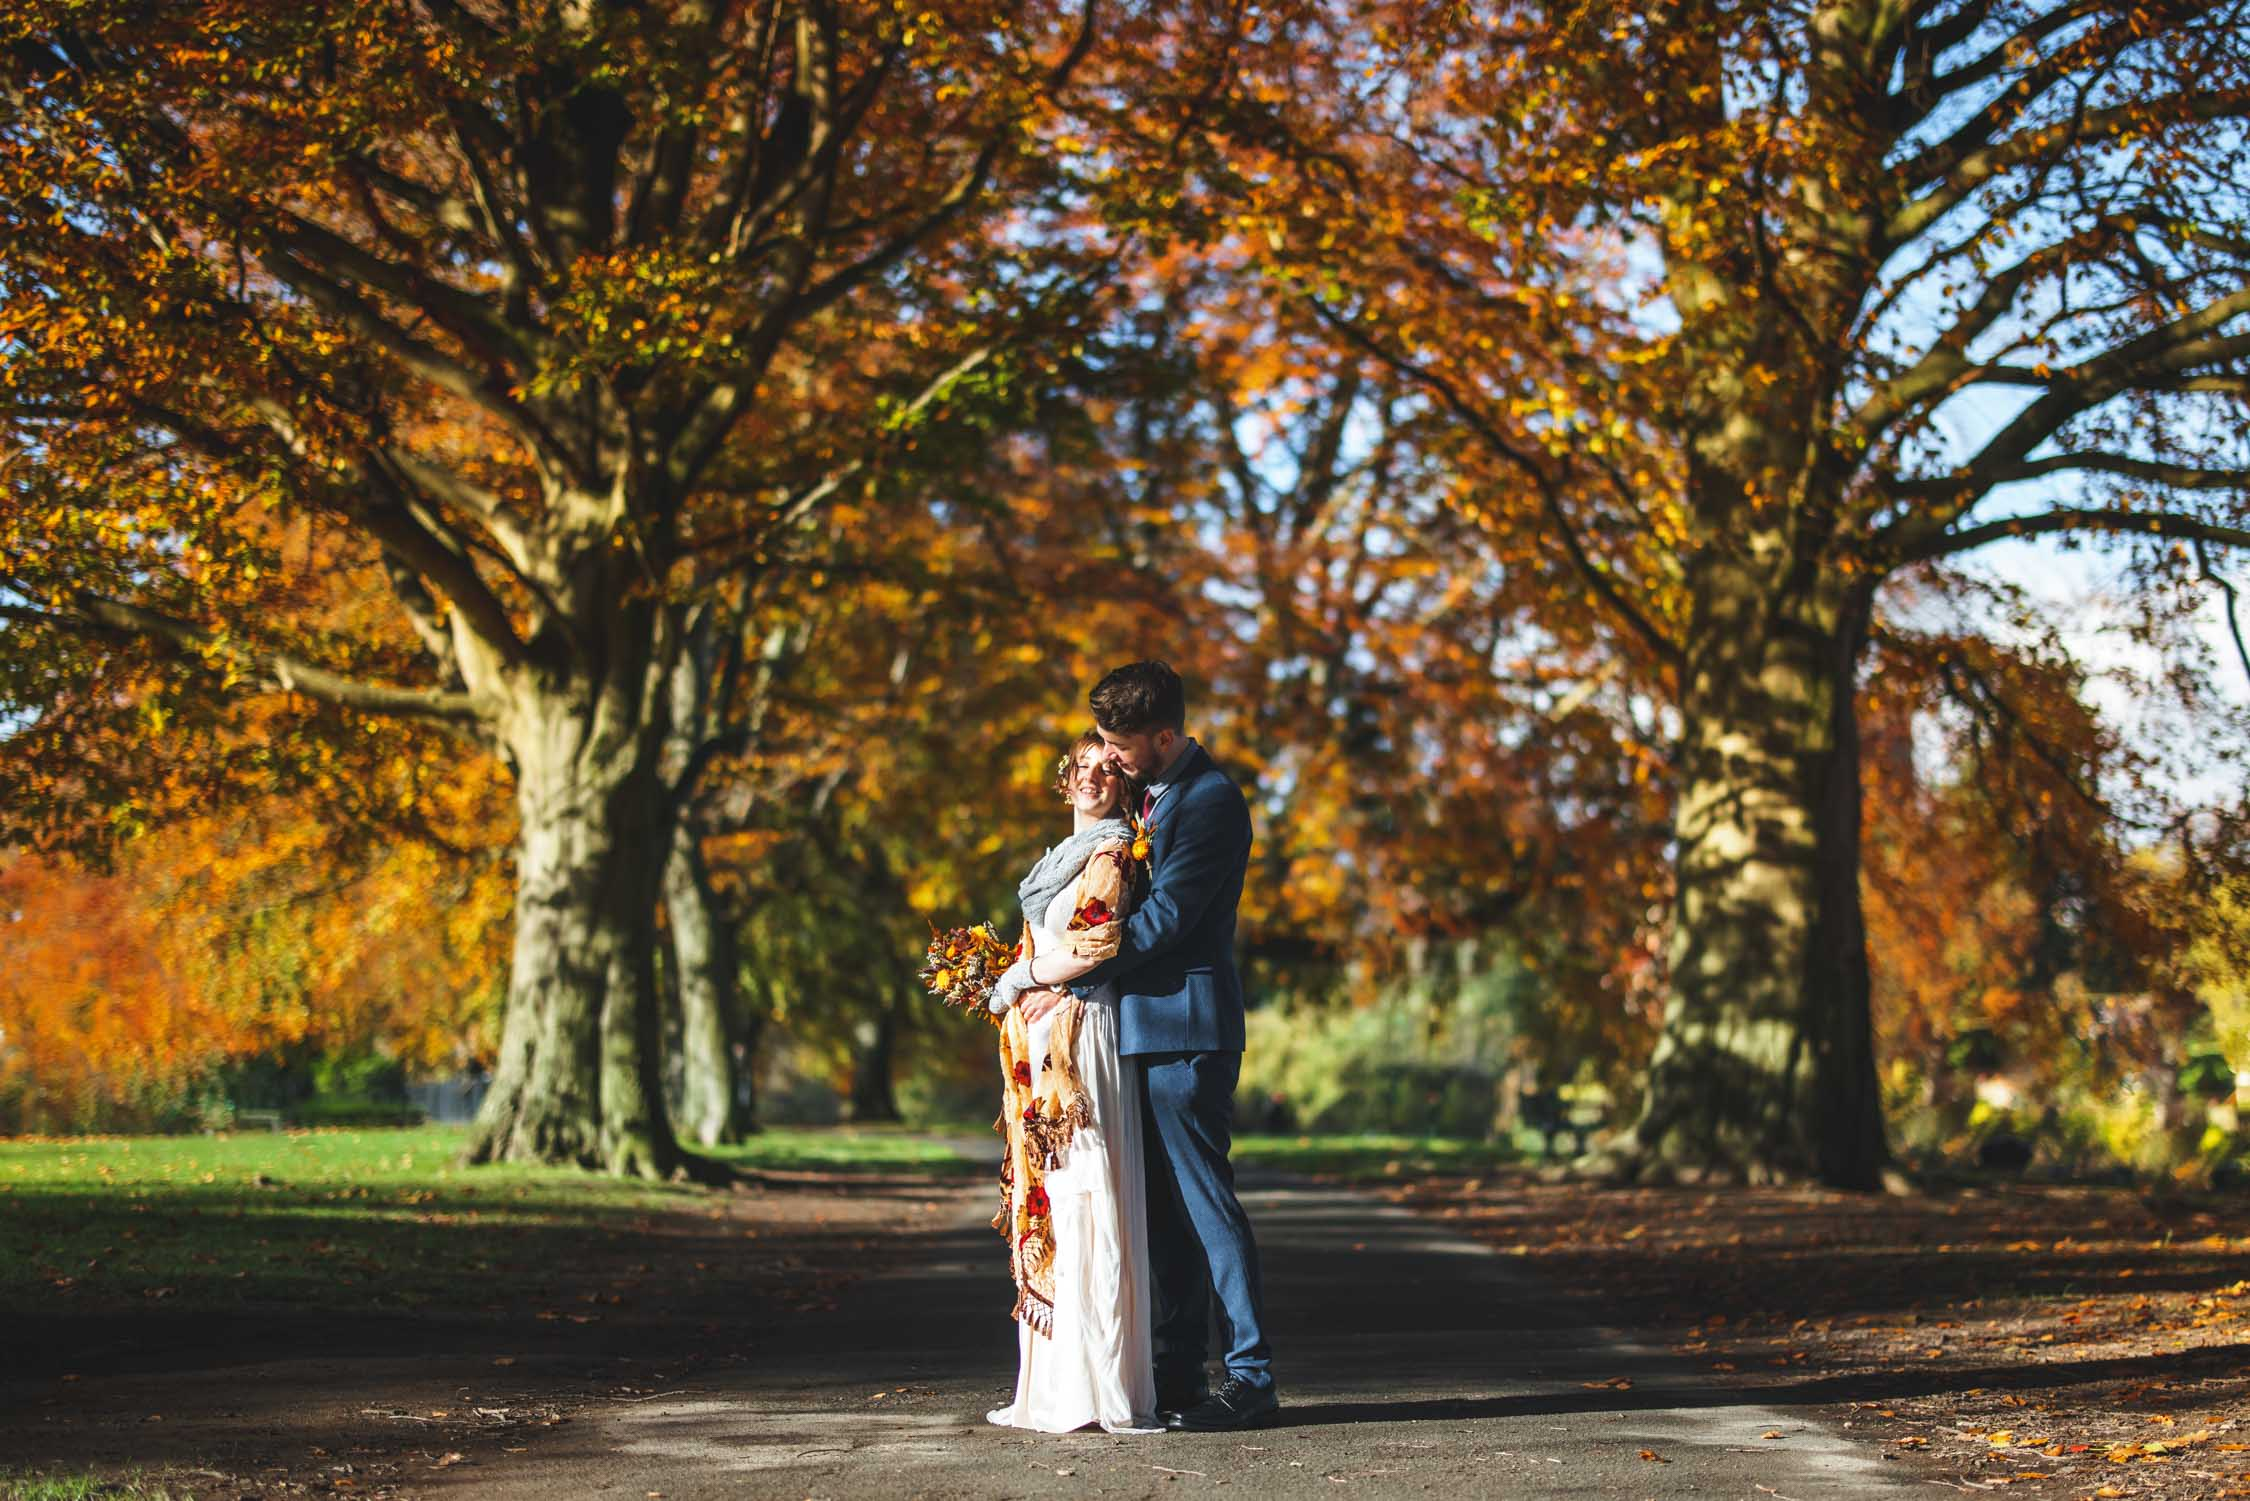 Wedding Photogaphy in Herefordshire, Hereford, Uk